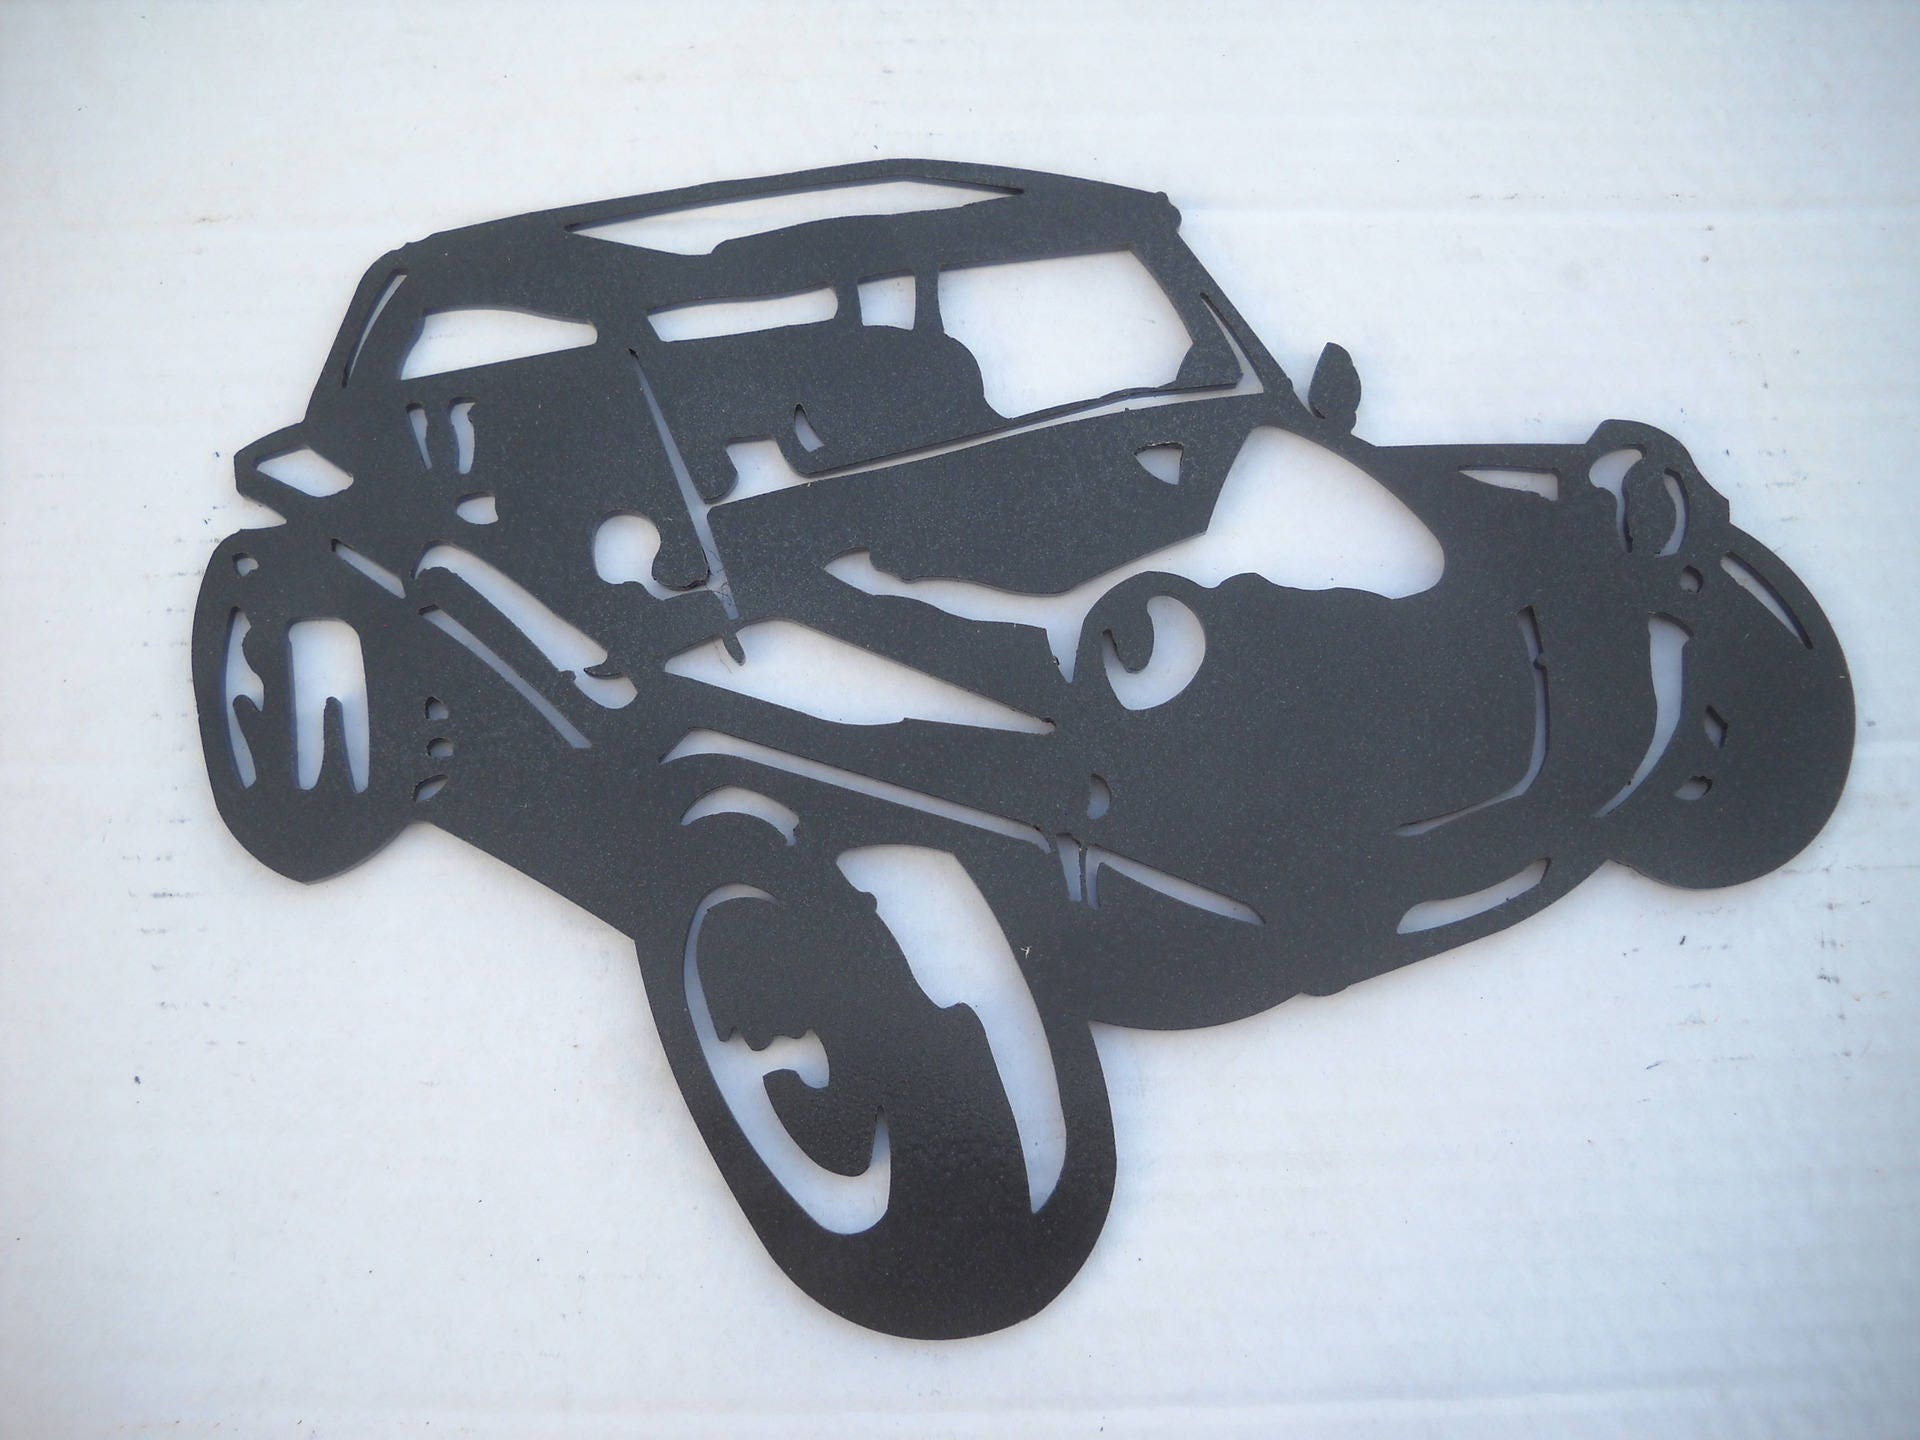 plaque enseigne buggy vw en fer peint etsy. Black Bedroom Furniture Sets. Home Design Ideas